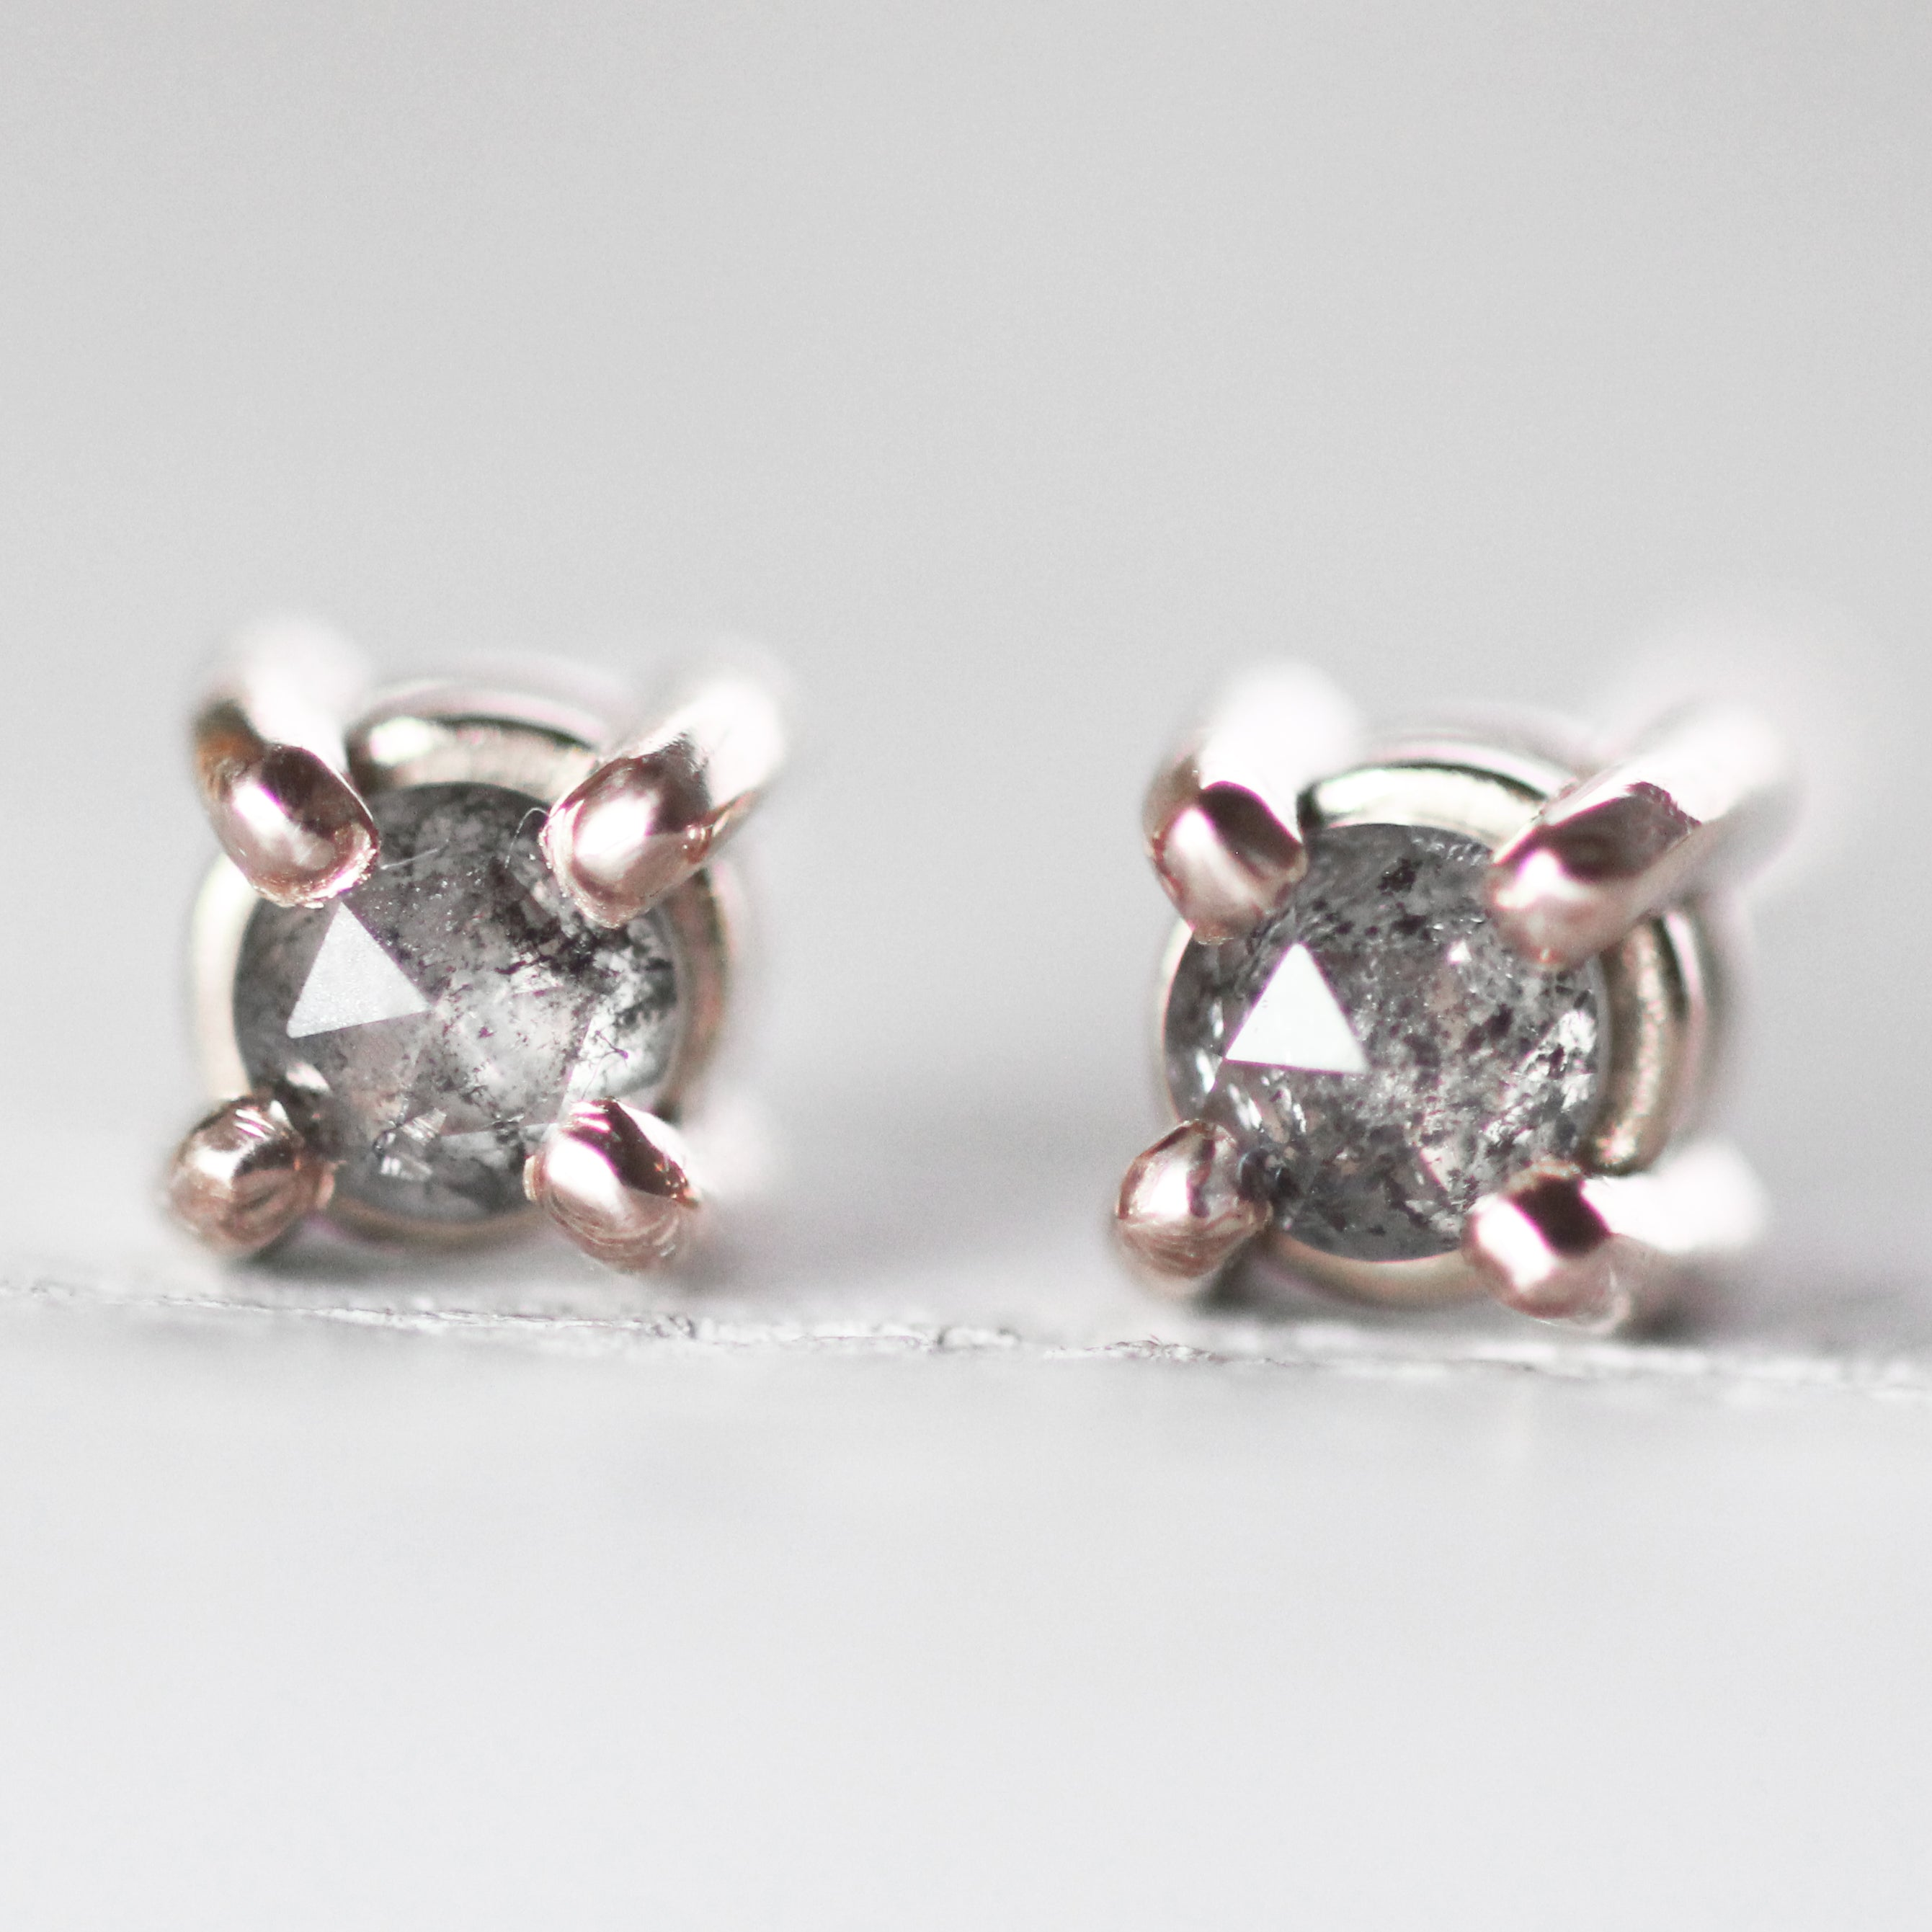 14k Gold Gray Diamond Earring Studs - Rose Cut Celestial - Ready to ship fast - Celestial Diamonds ® by Midwinter Co.